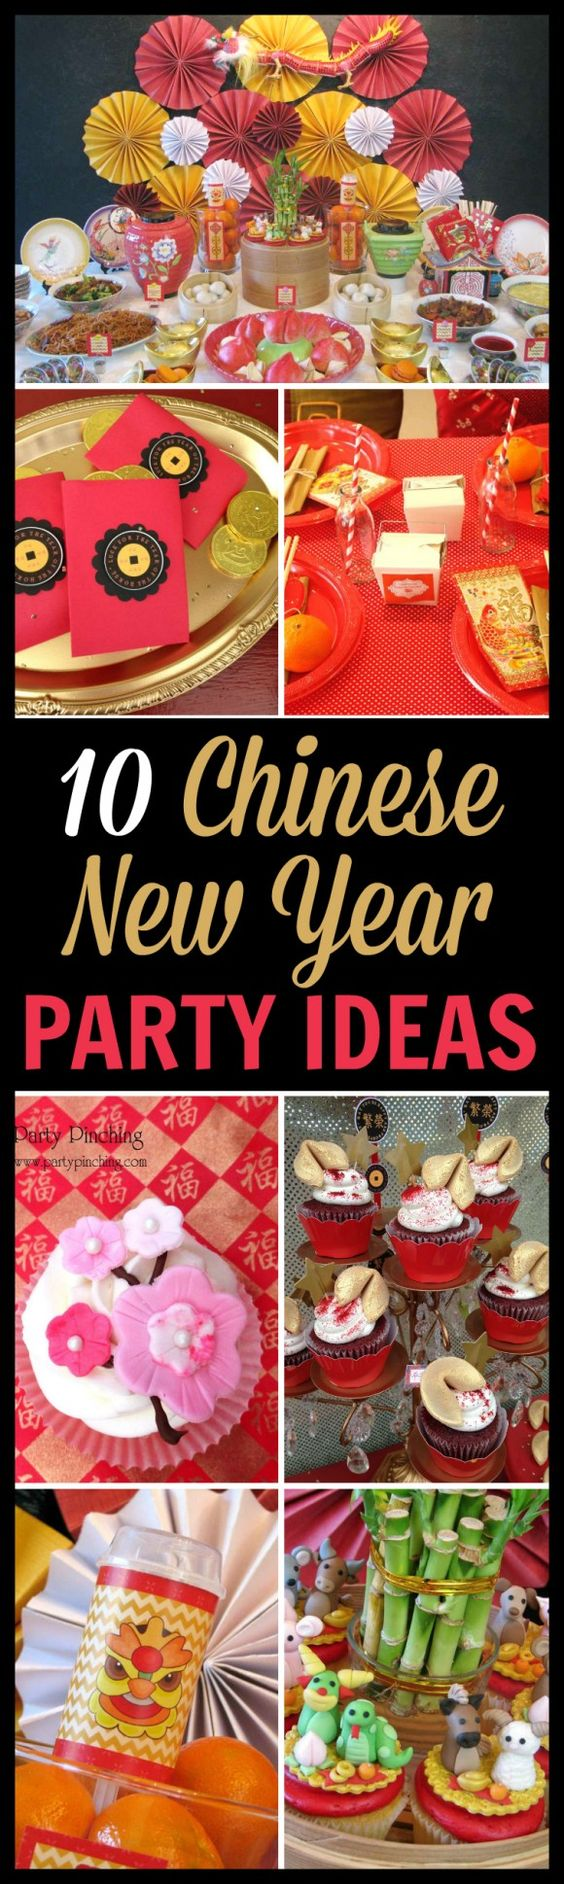 10 Chinese New Year Party Ideas